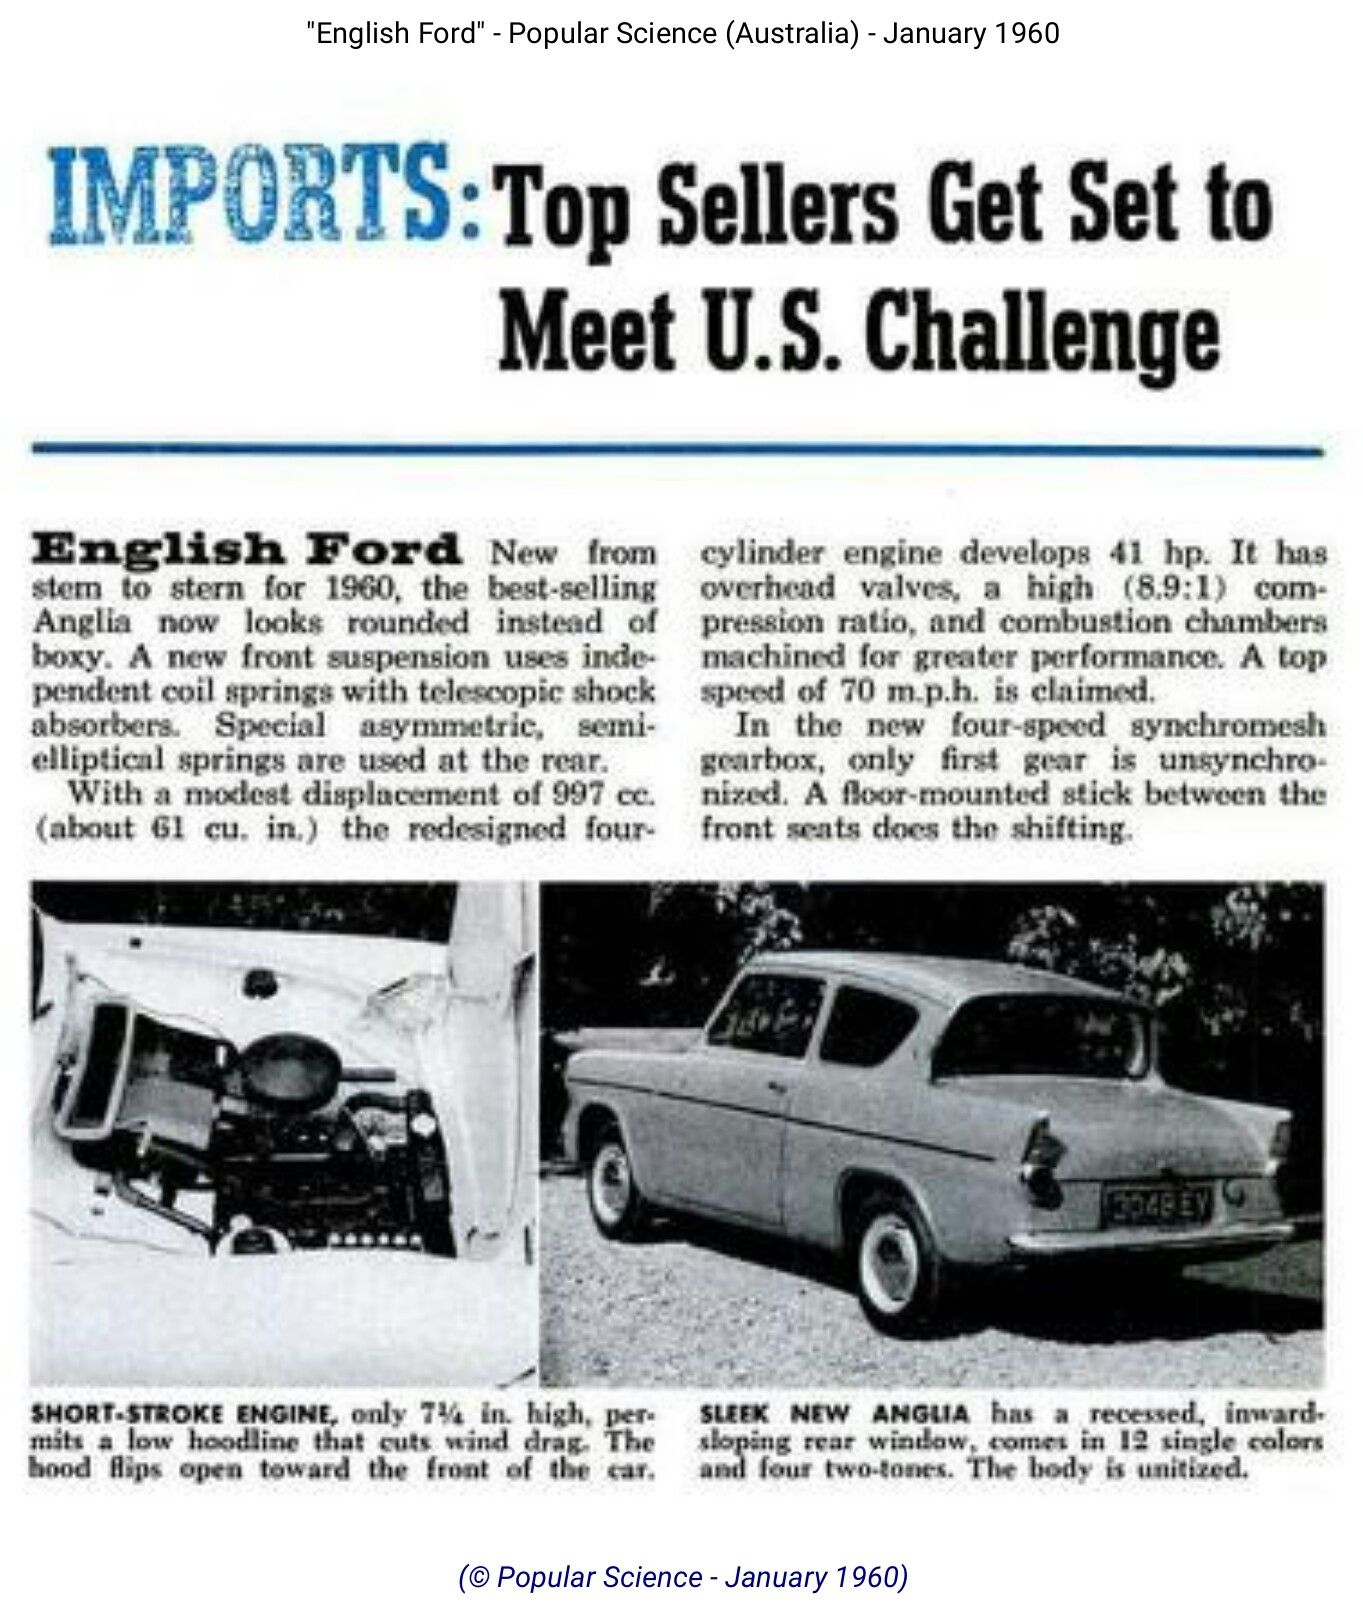 1960 Ford Anglia Popular Science Australia Popular Science